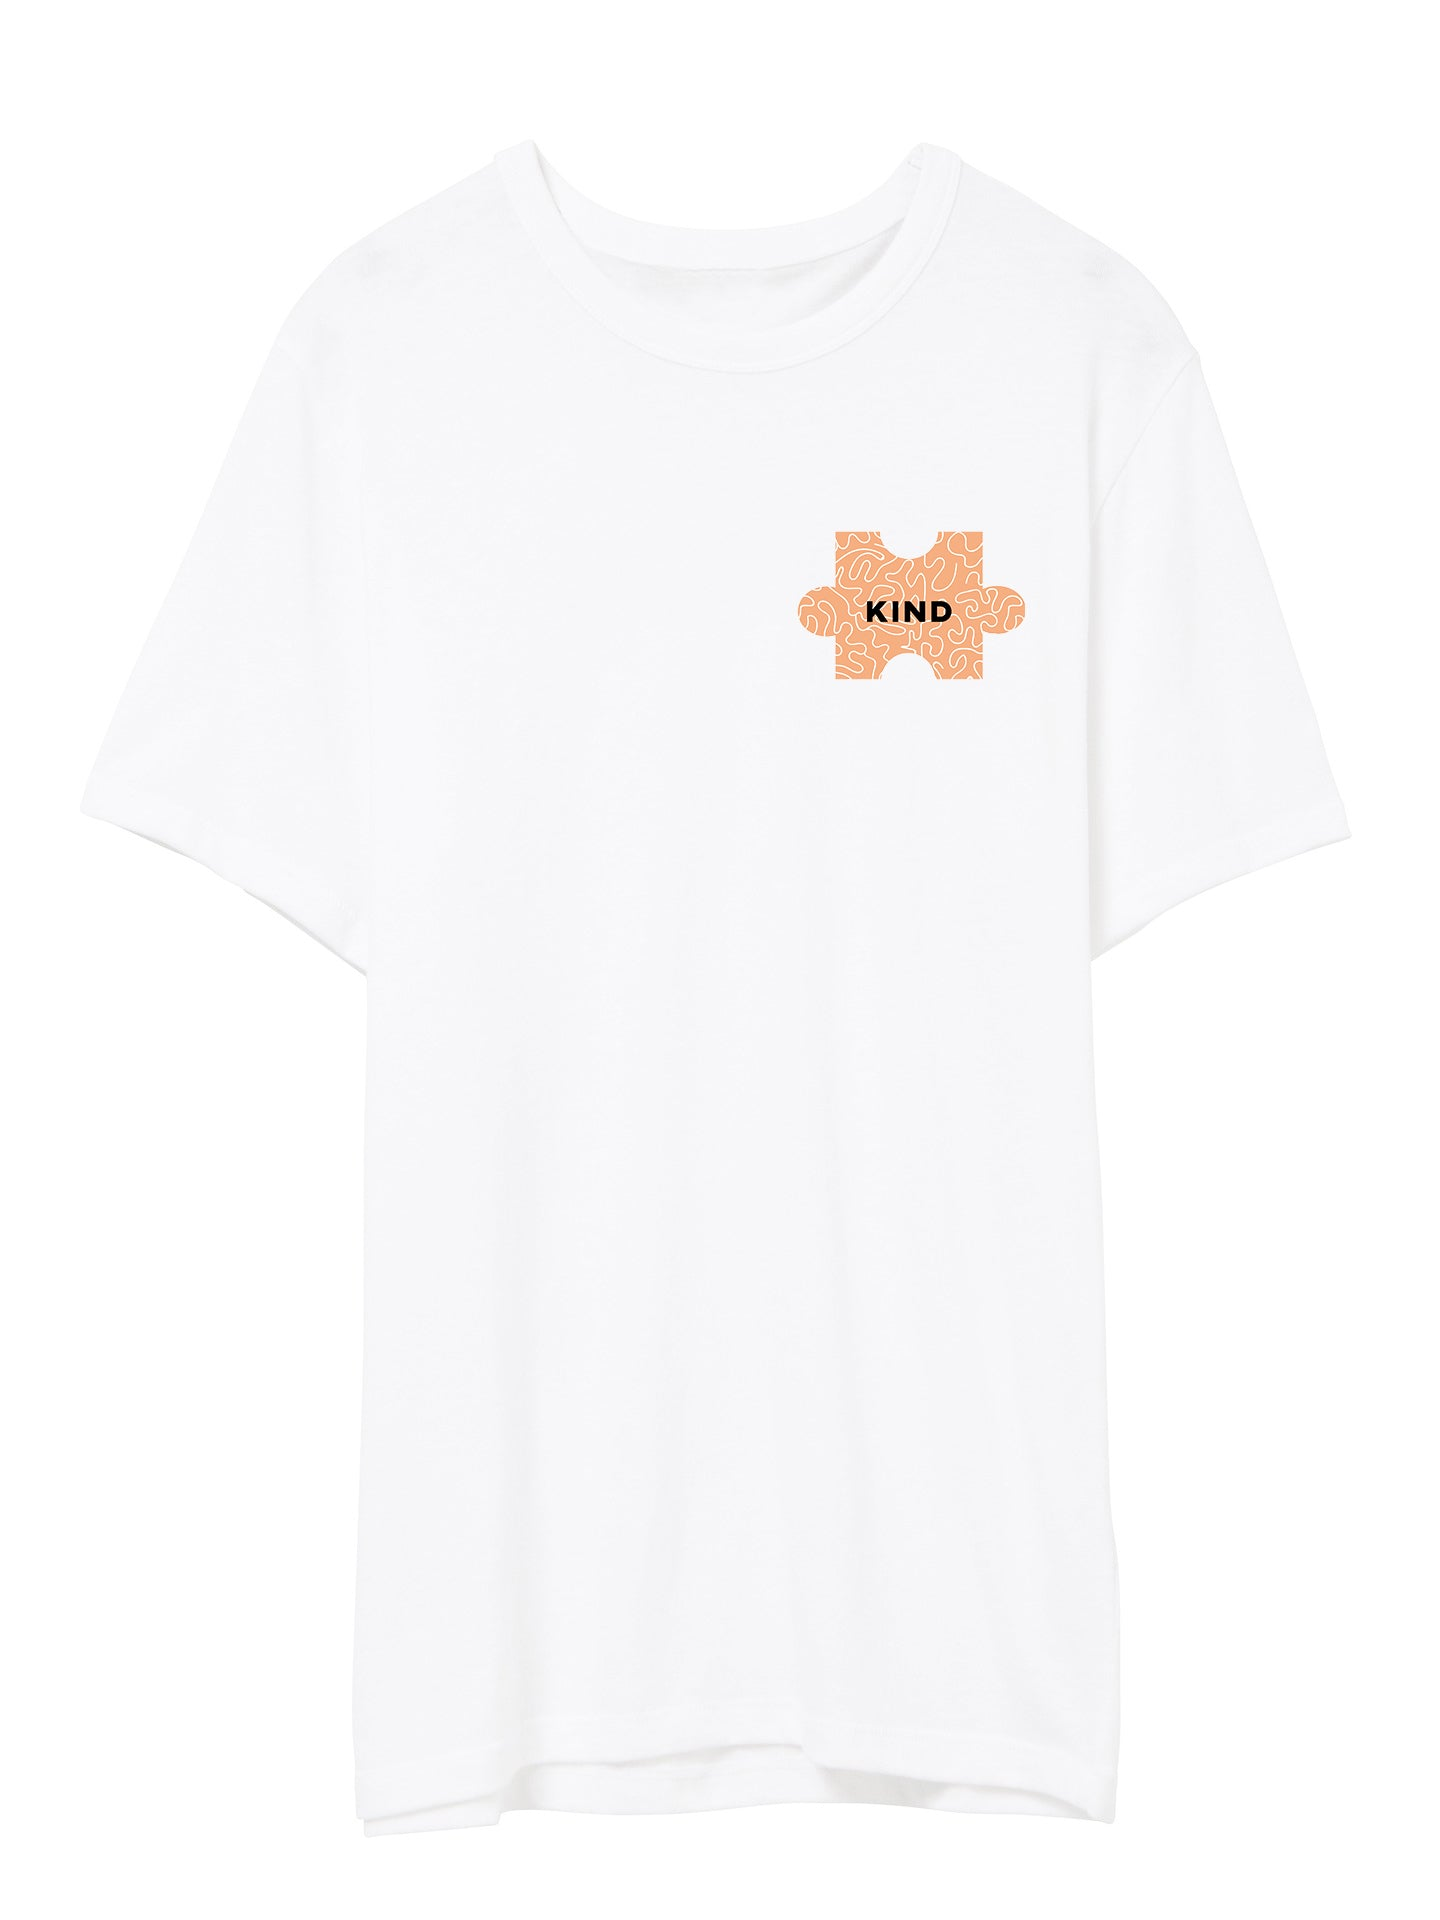 The Power of Words - Men's Tee - Puzzle Pieces - KIND